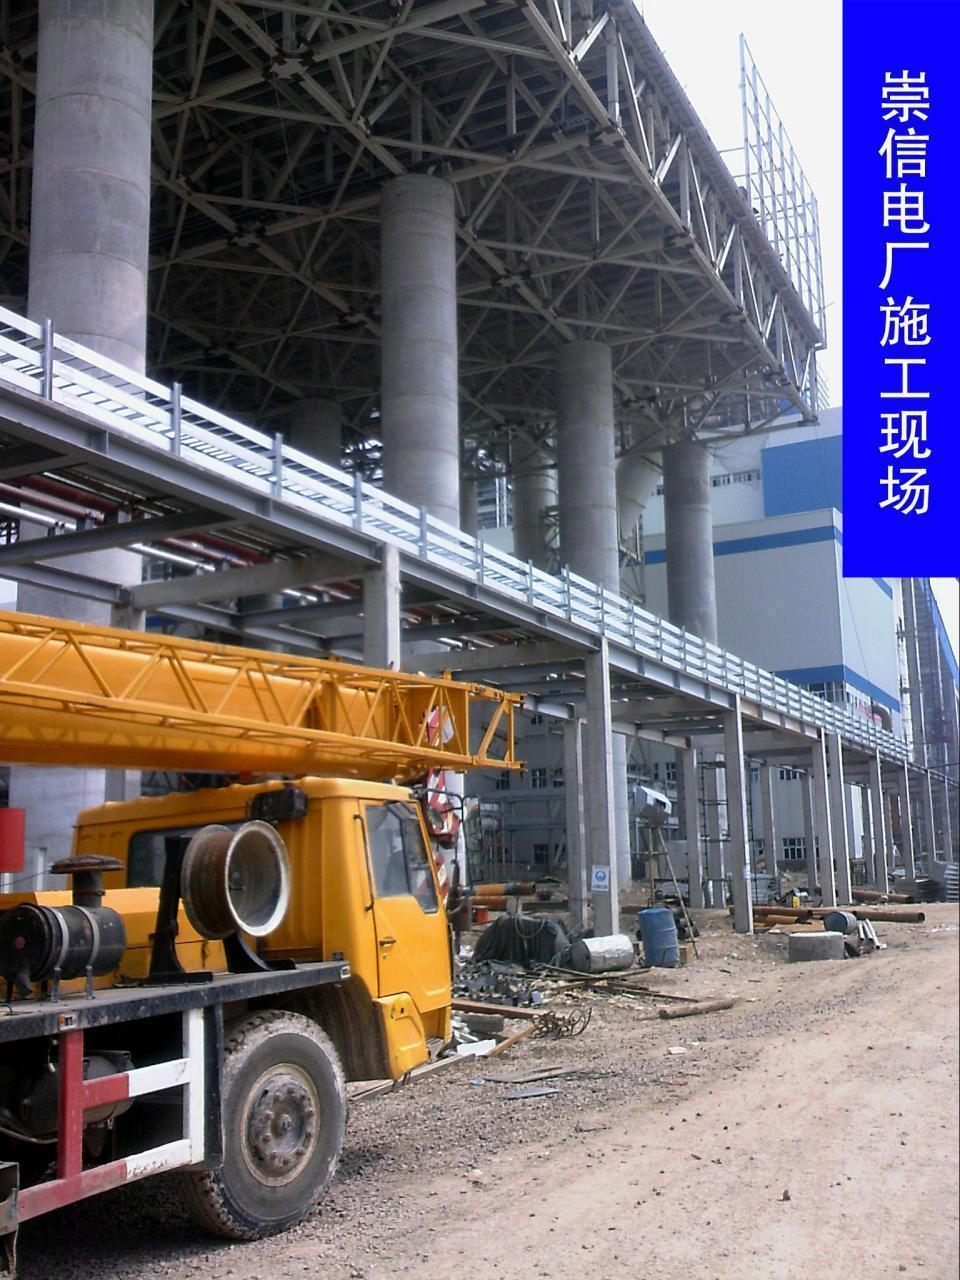 testing-the-working-conditions-for-compressor-system-for-national-power-plant-in-shanghai-3